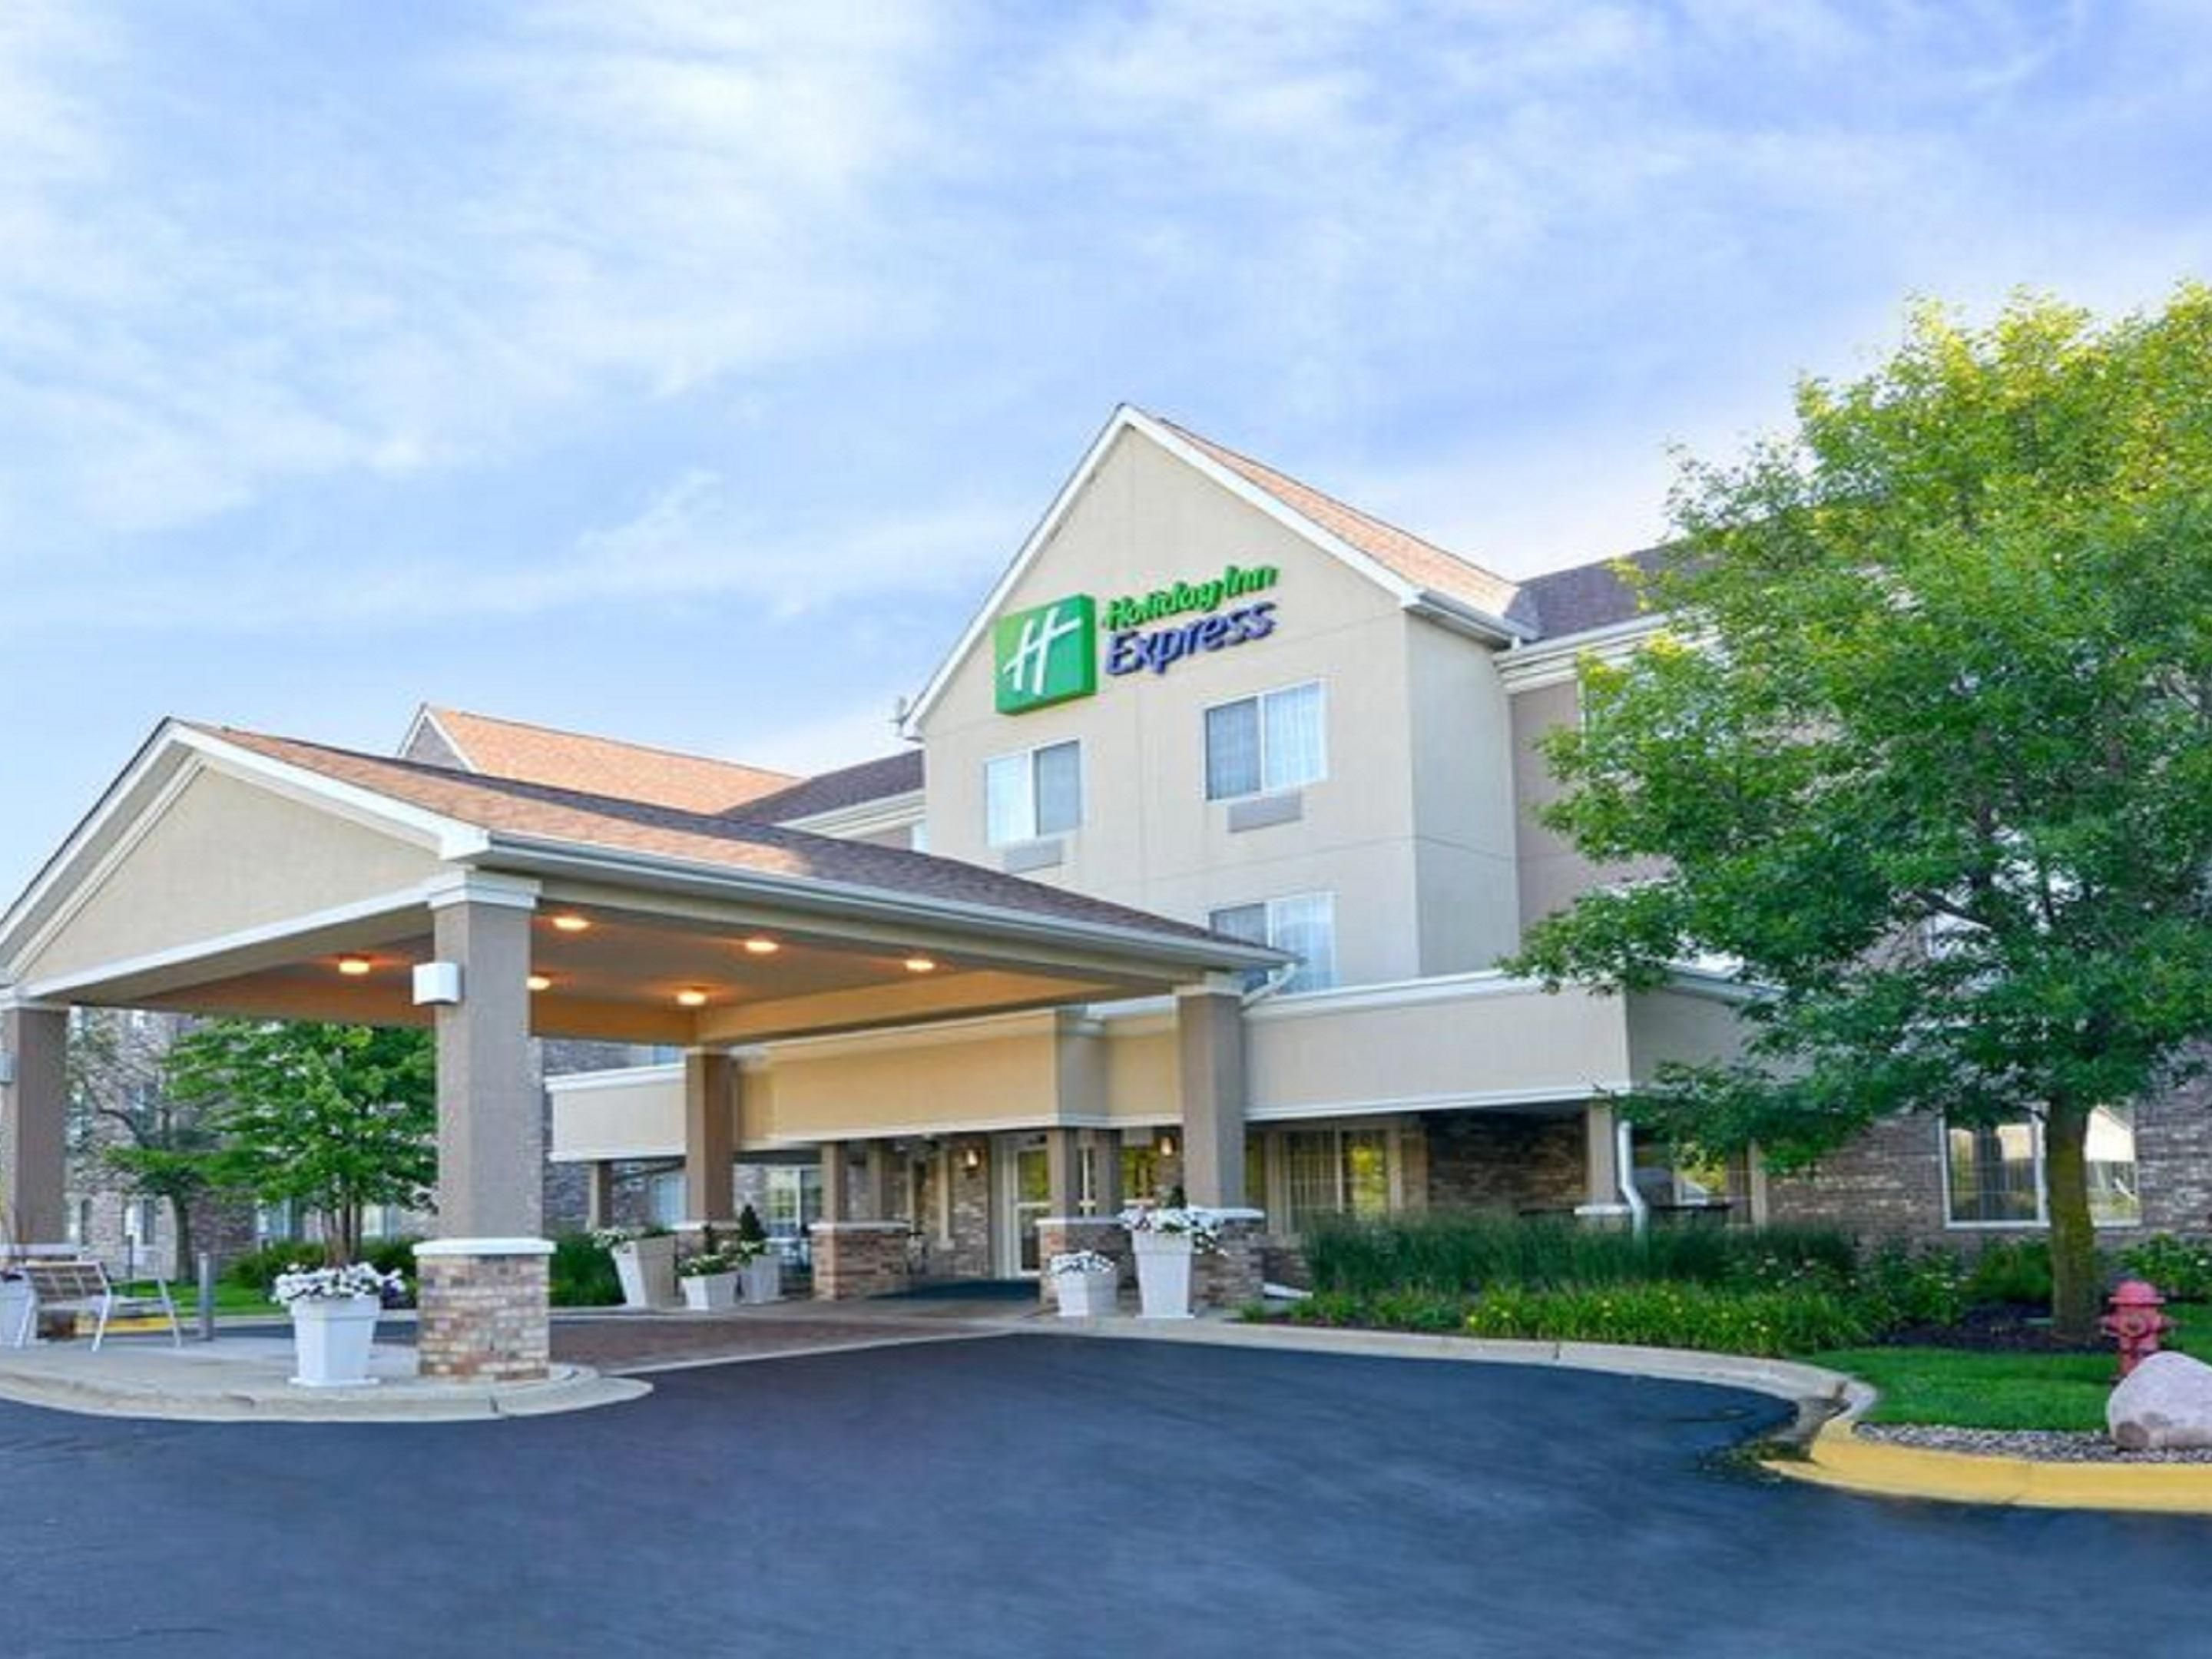 Holiday Inn Express Suites Chicago Deerfield Lincolnshire Hotel By Ihg